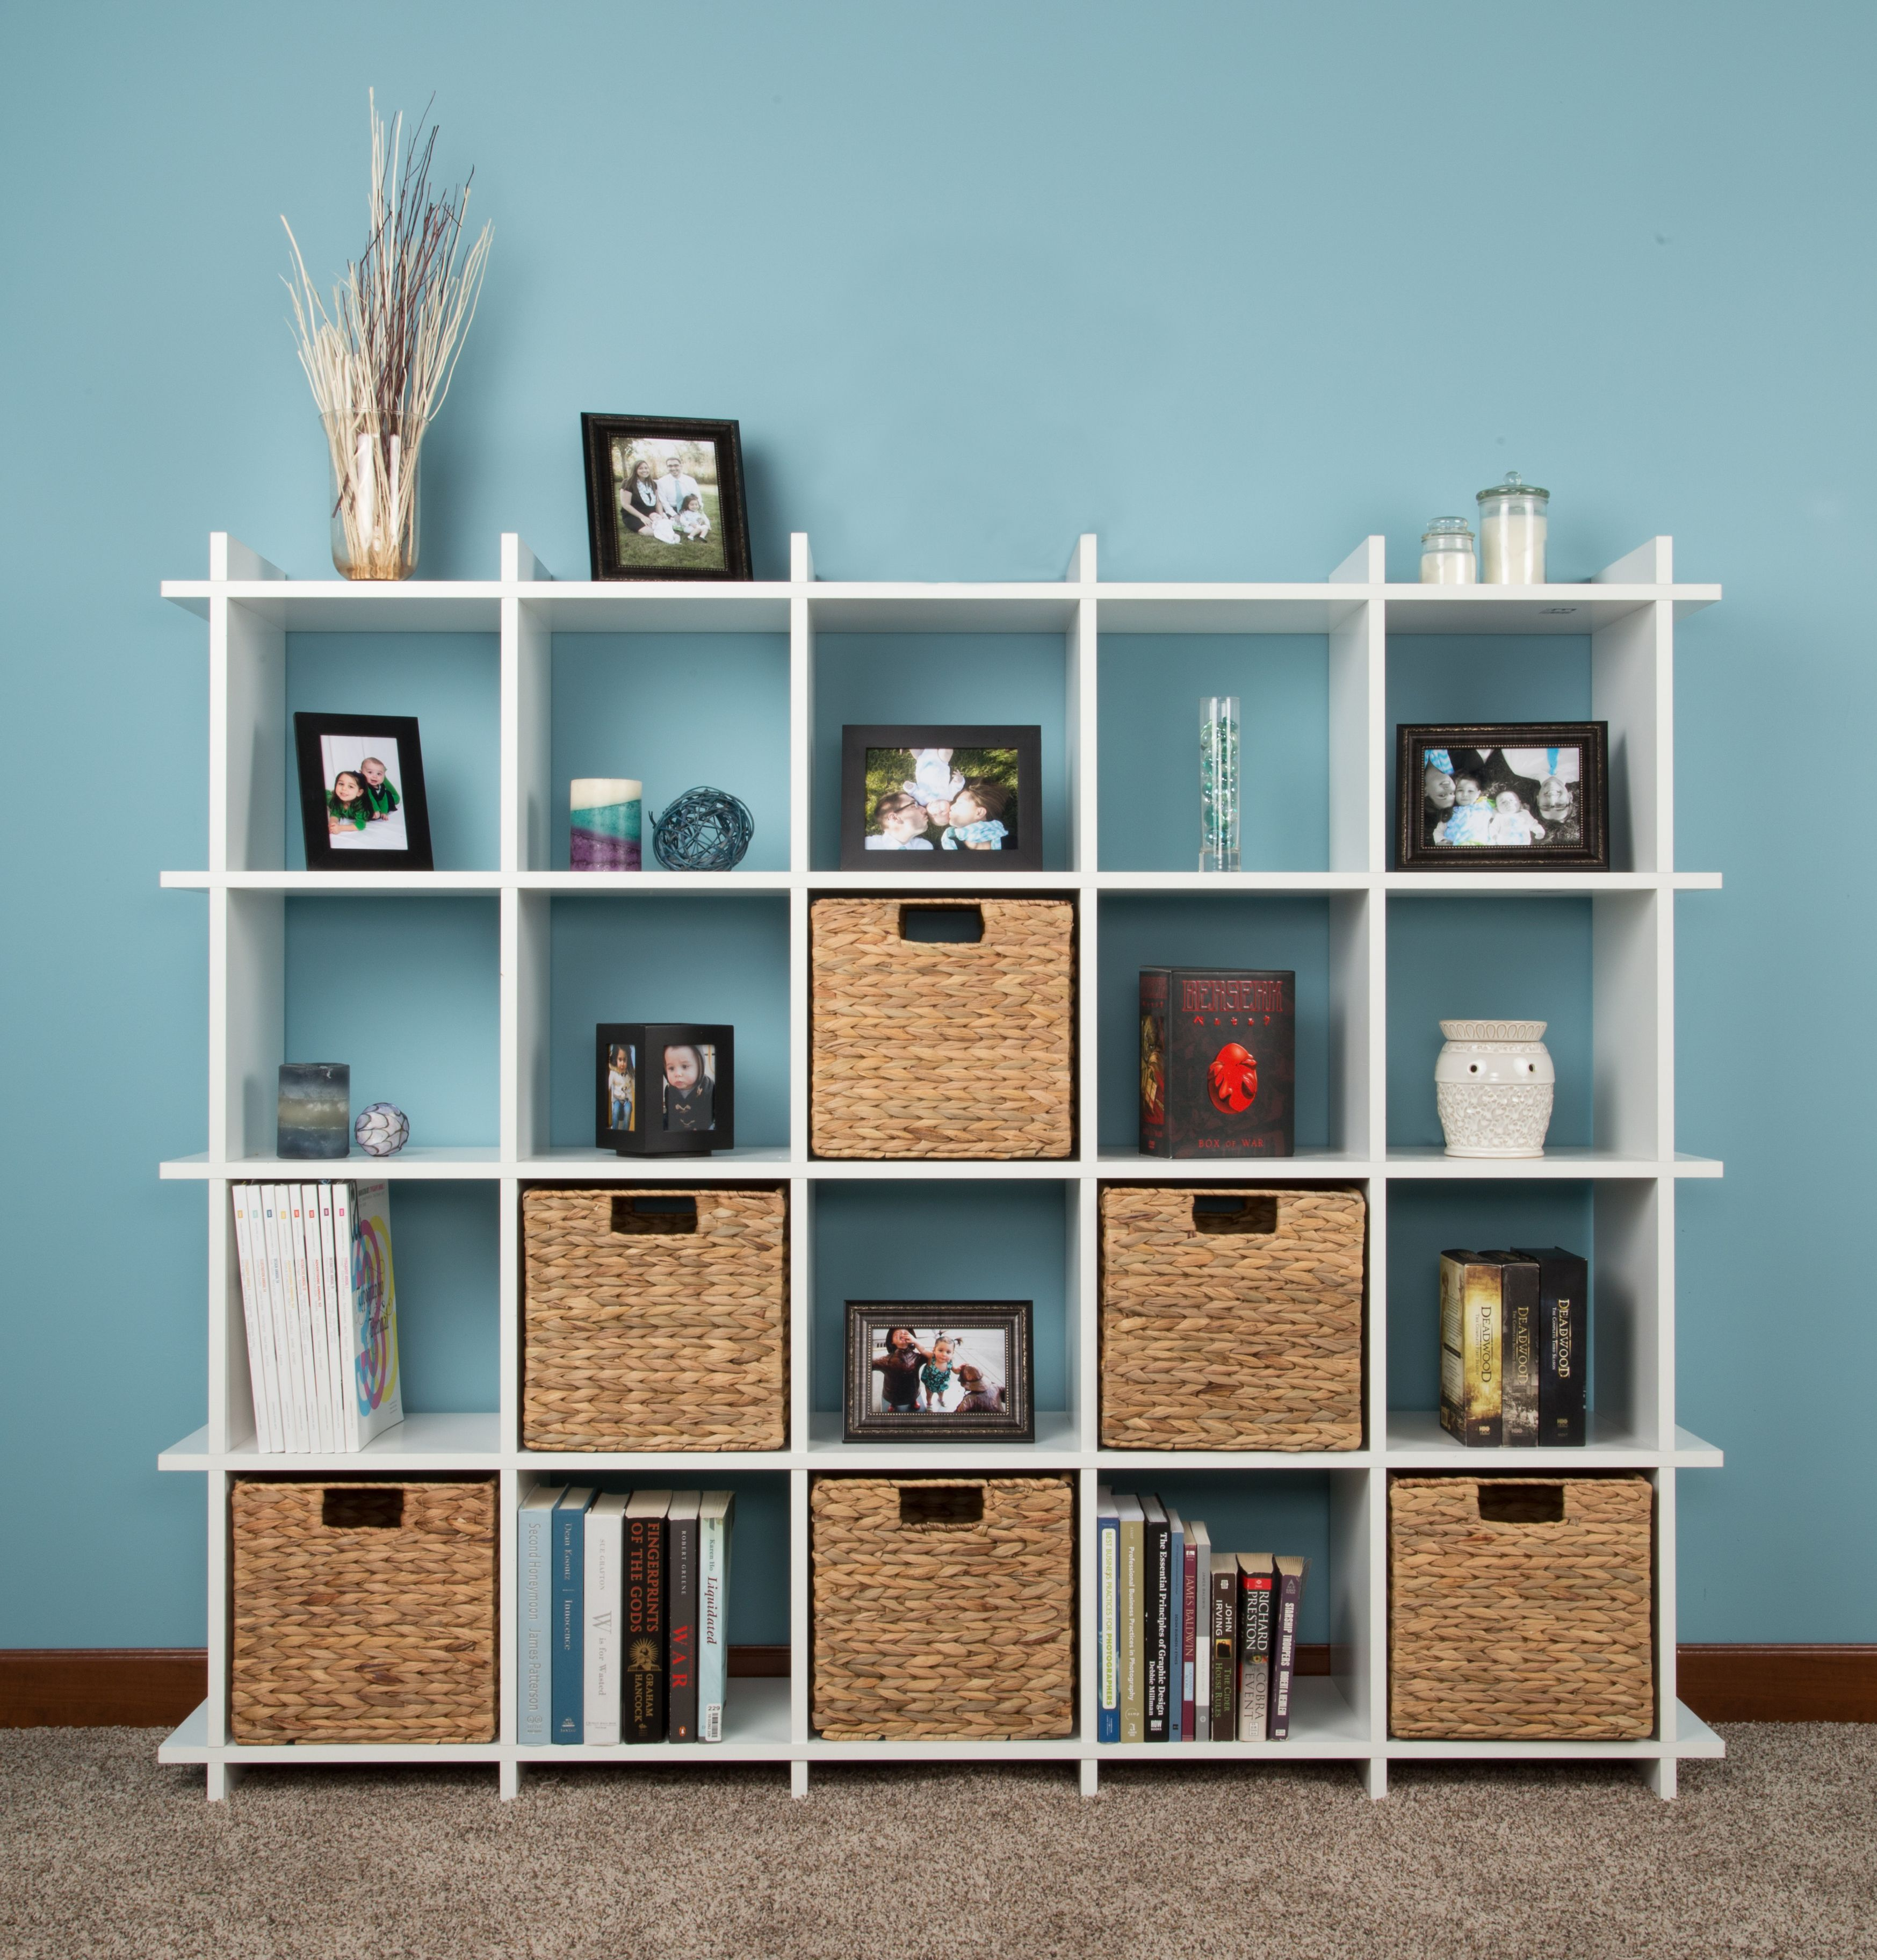 Design Your Own Book Case With Lockube Wooden Closet Shelves Closet Makeover Paint Color Inspiration